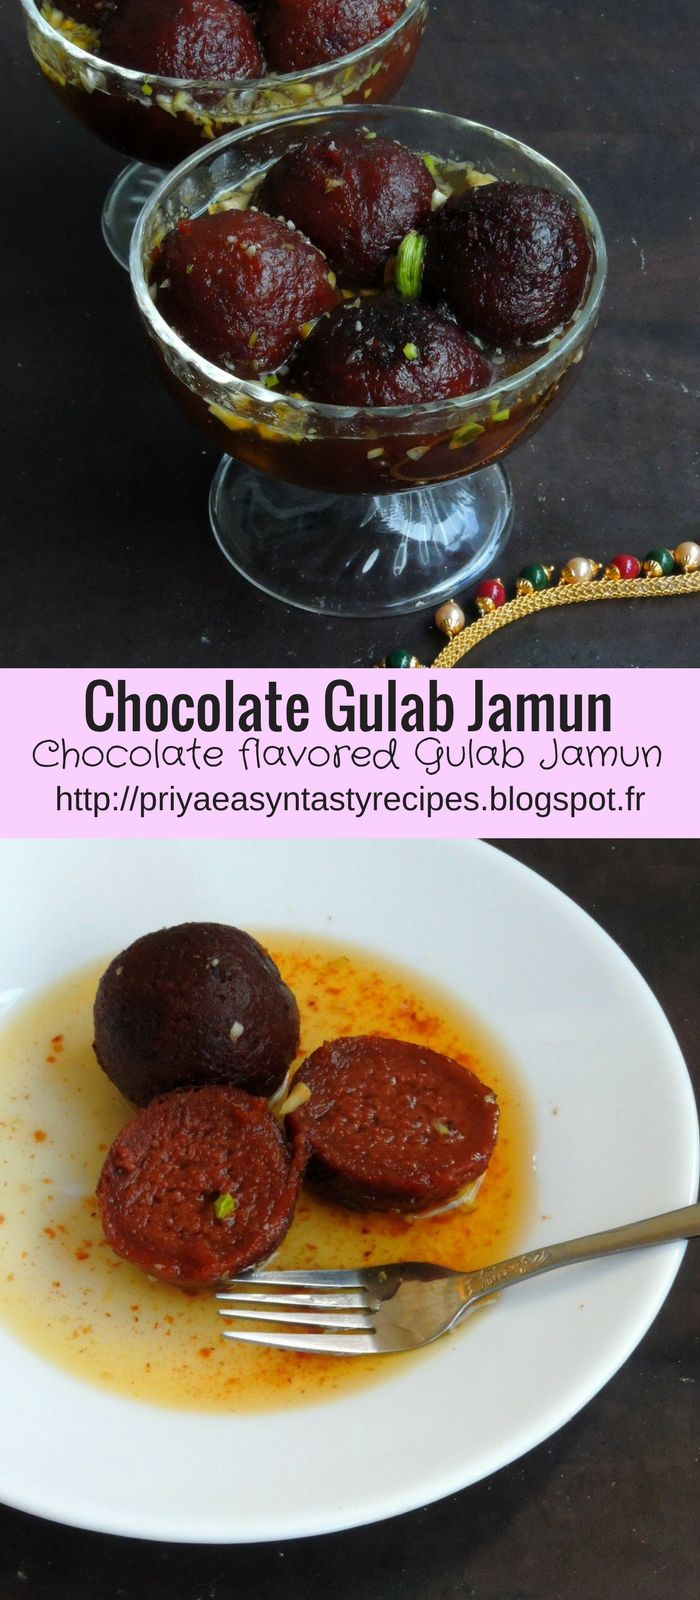 Chocolate Gulab Jamuns/Dark Chocolate Gulab Jamuns